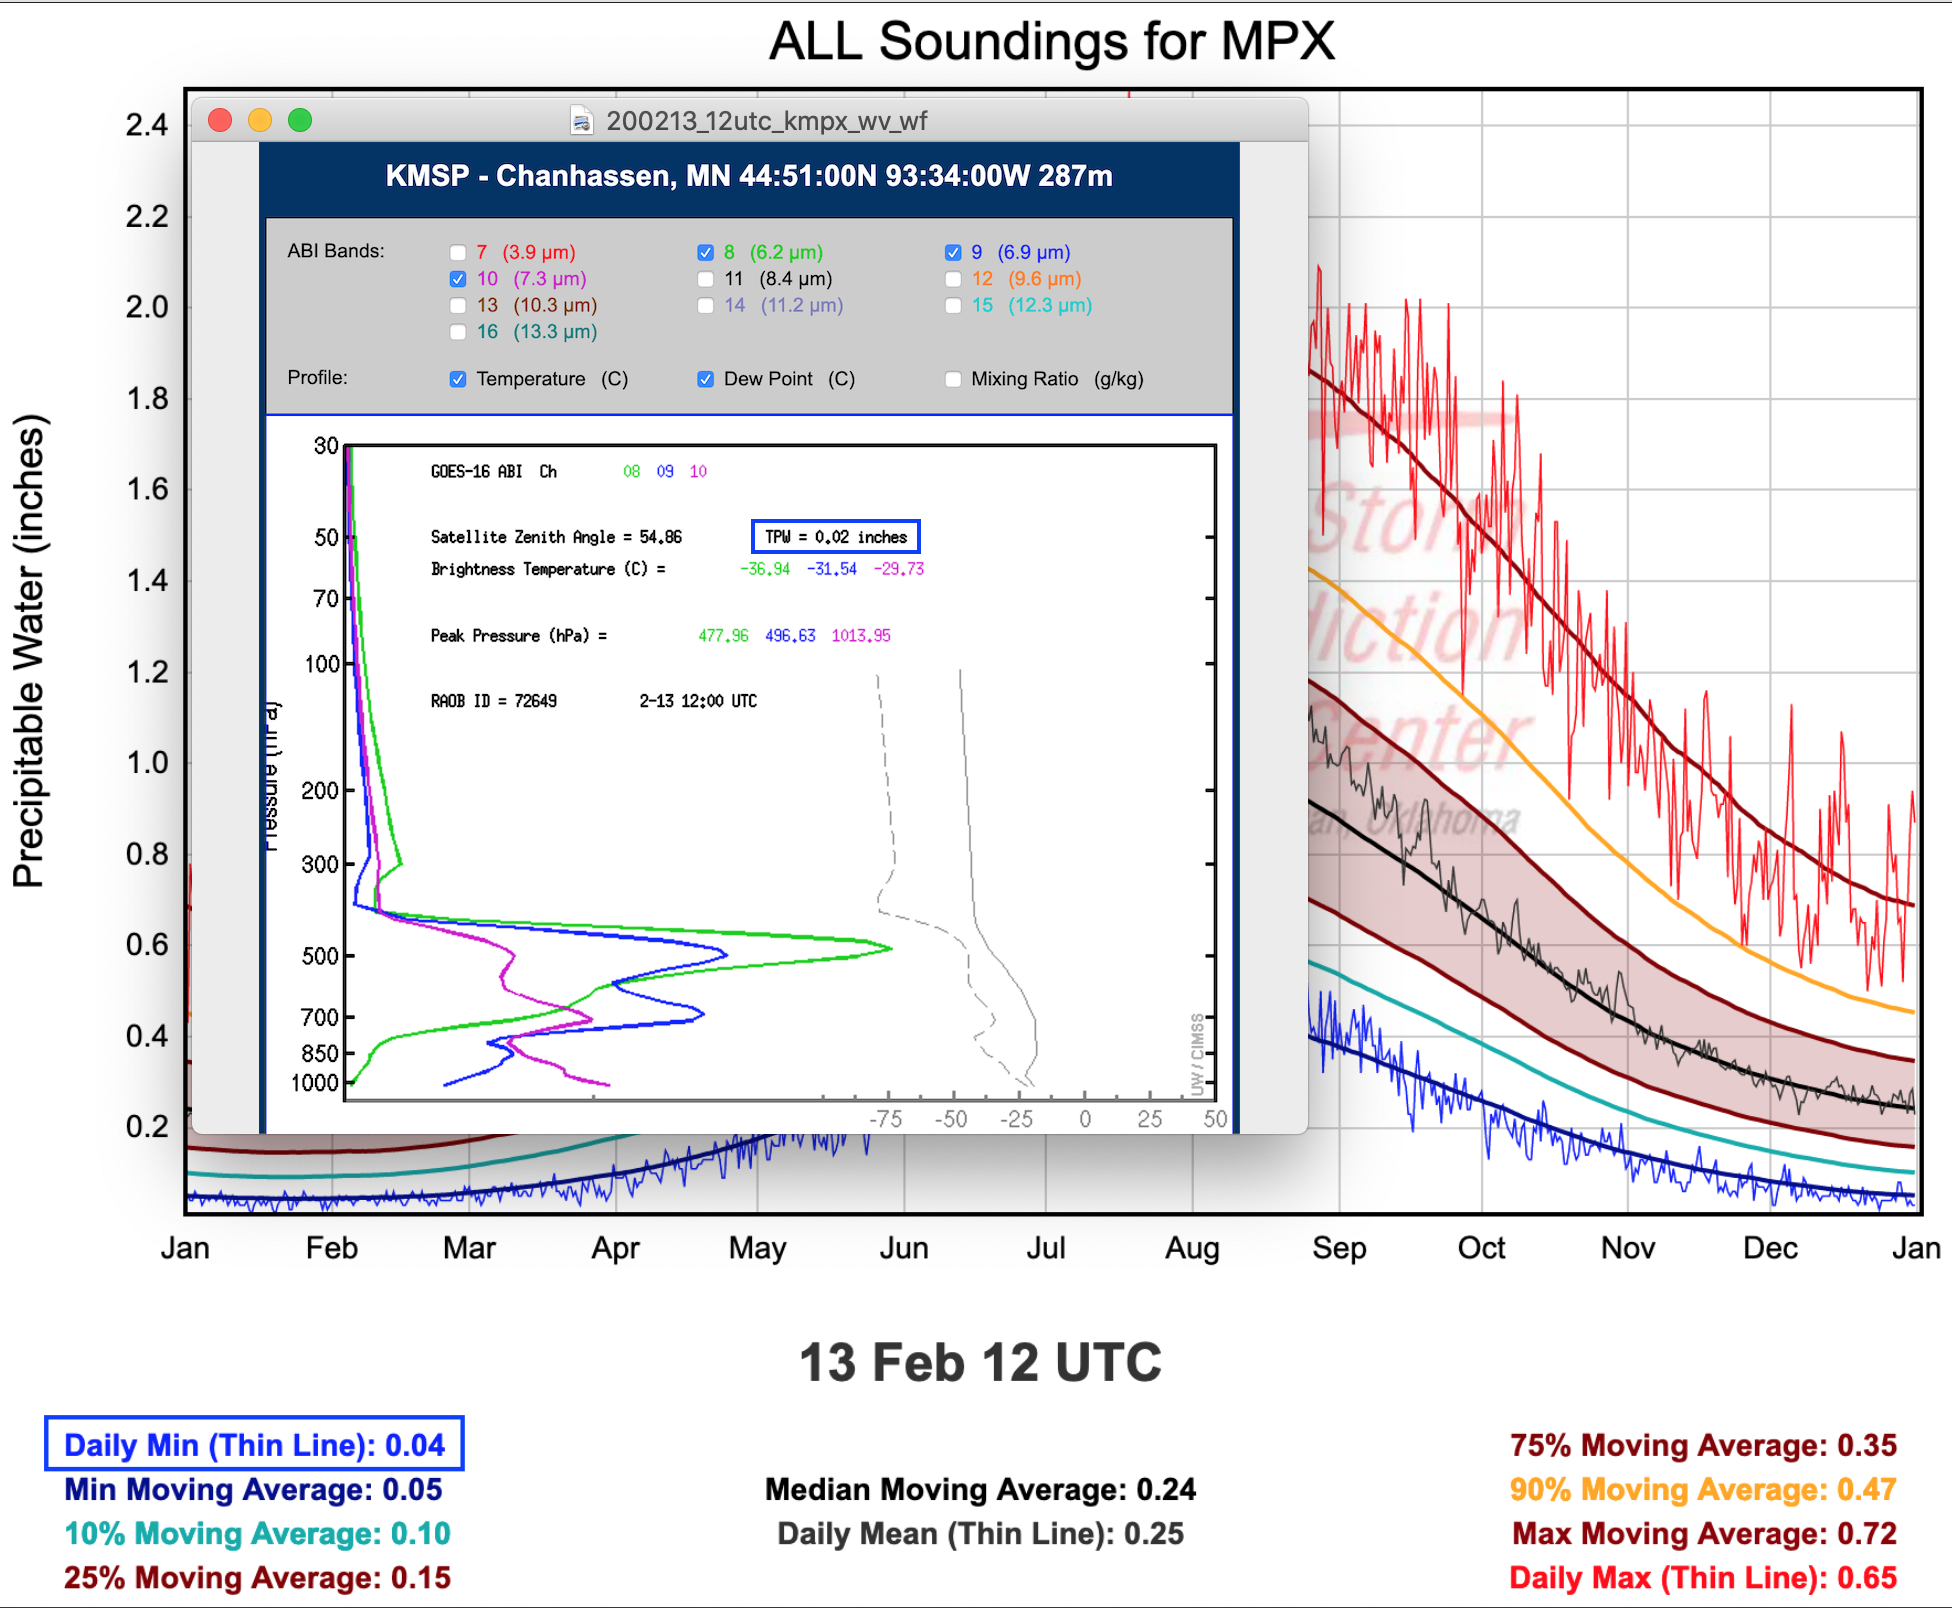 13 February / 12 UTC TPW climatology and water vapor weighting functions for Minneapolis/Chanhassen, MN [click to enlarge]